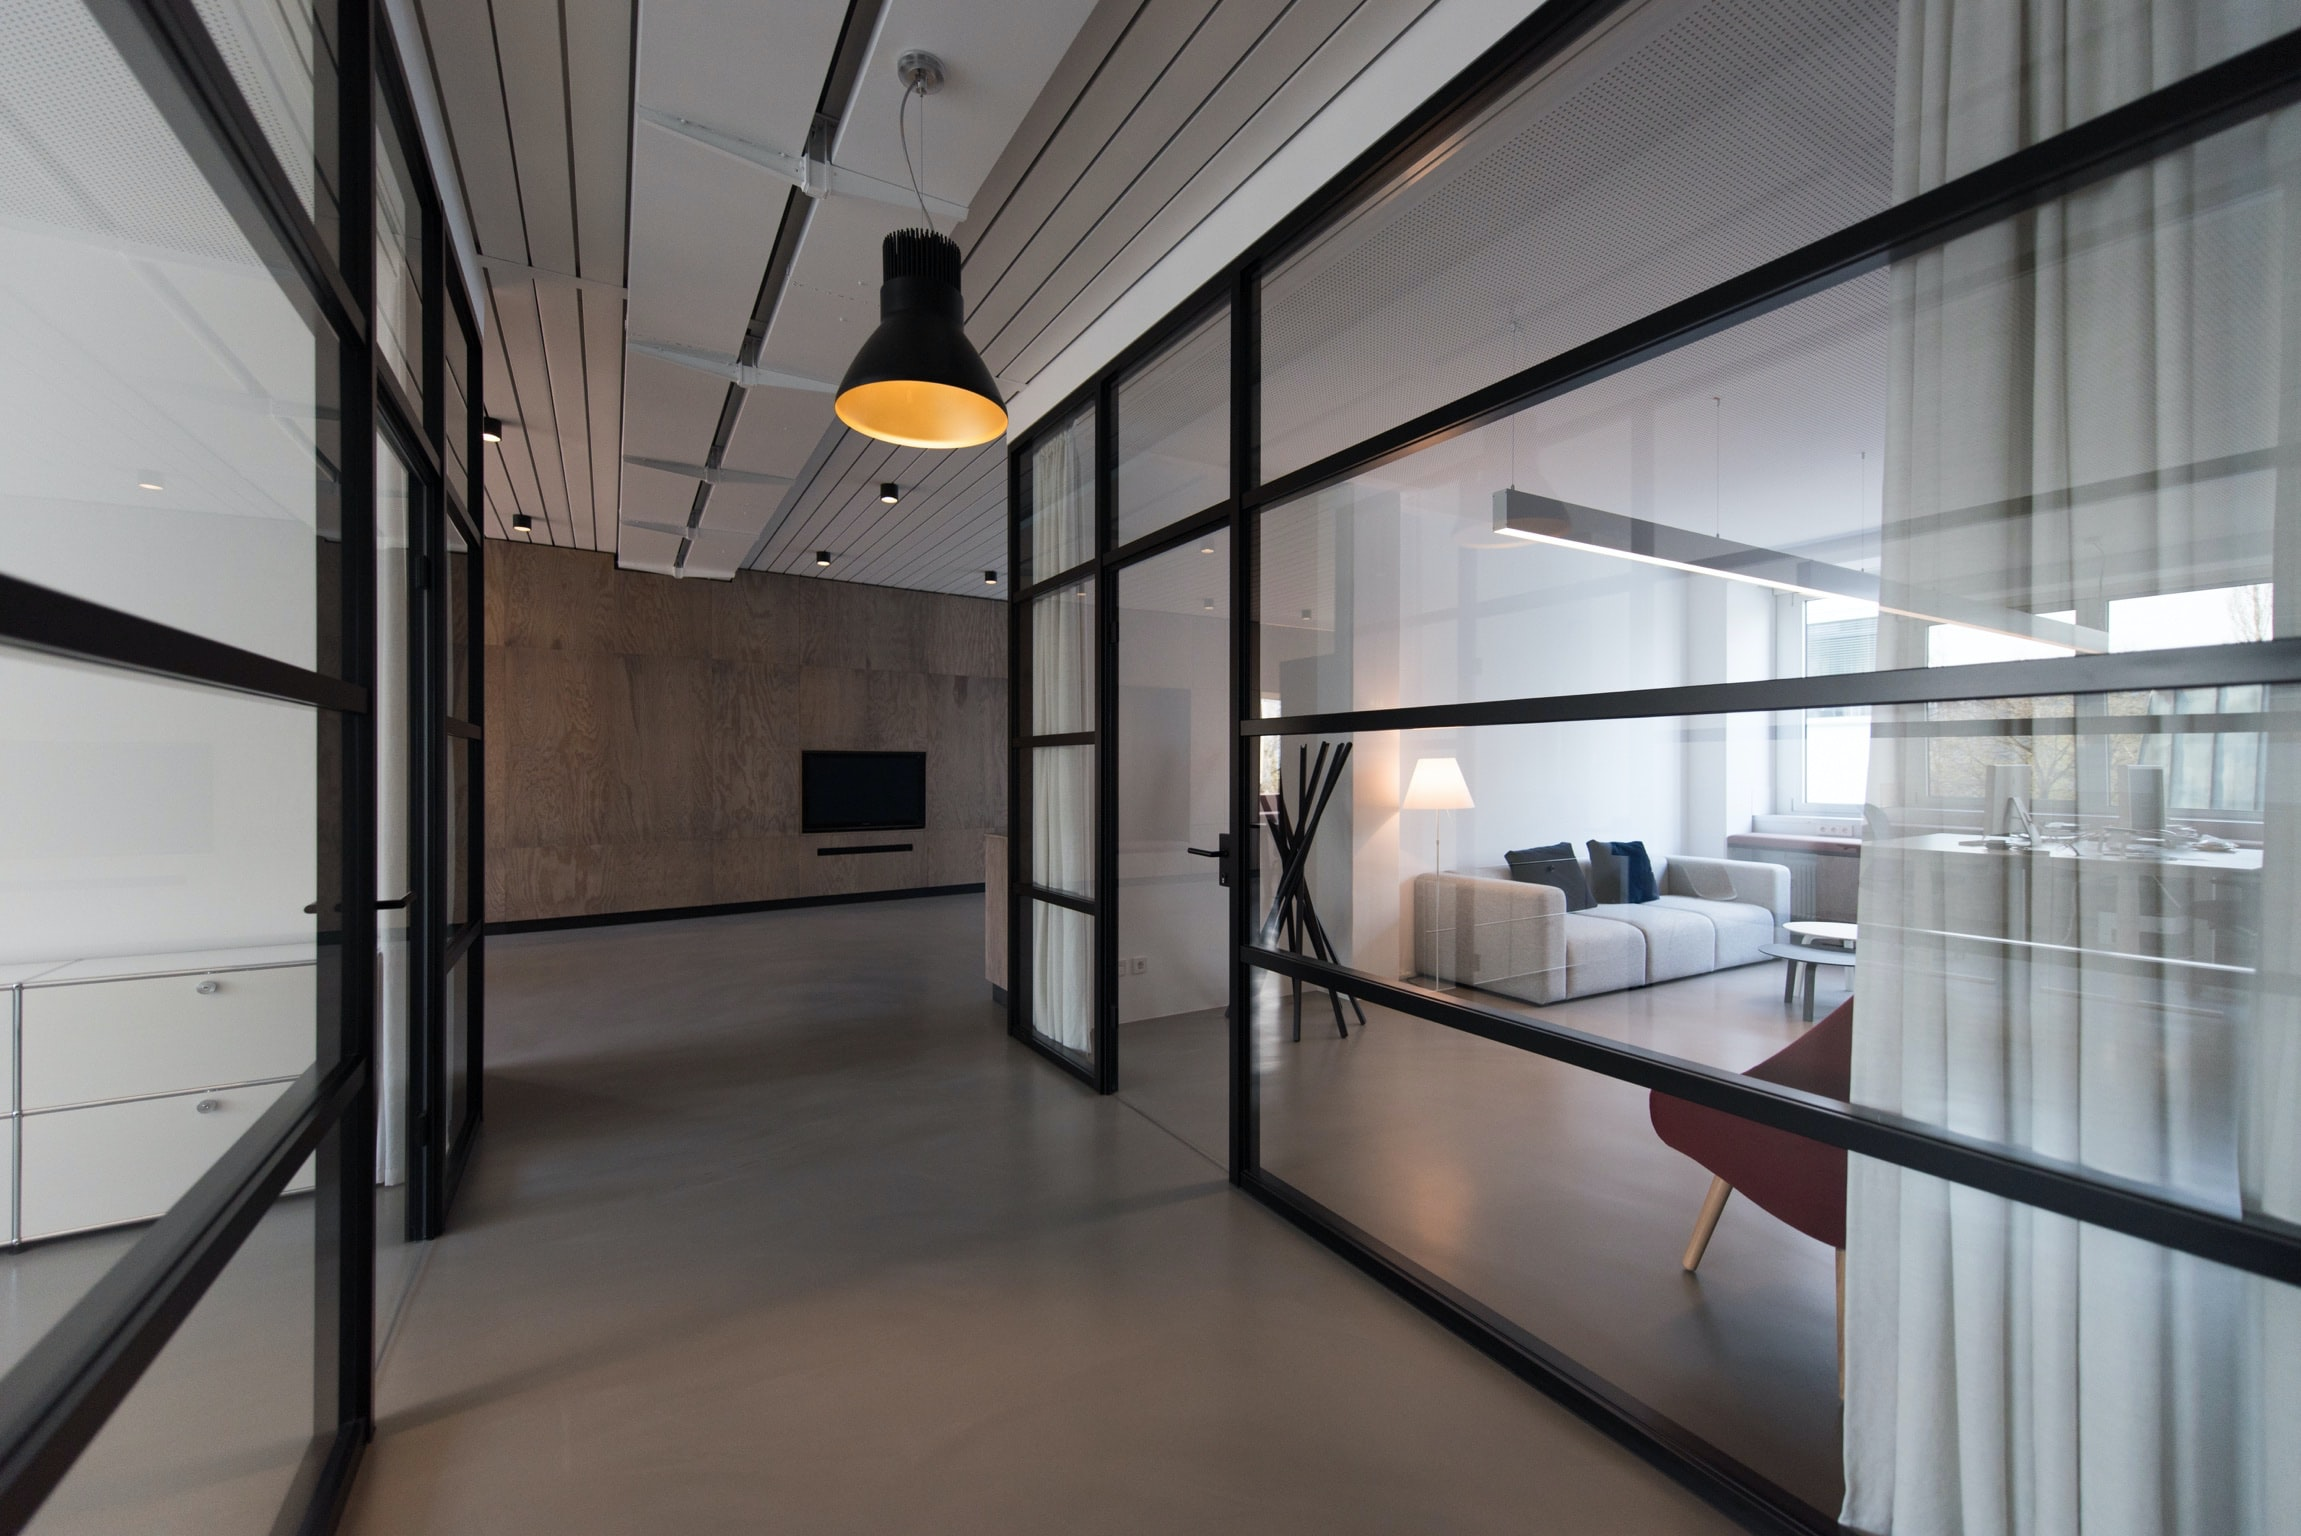 room with glass divider and white curtain